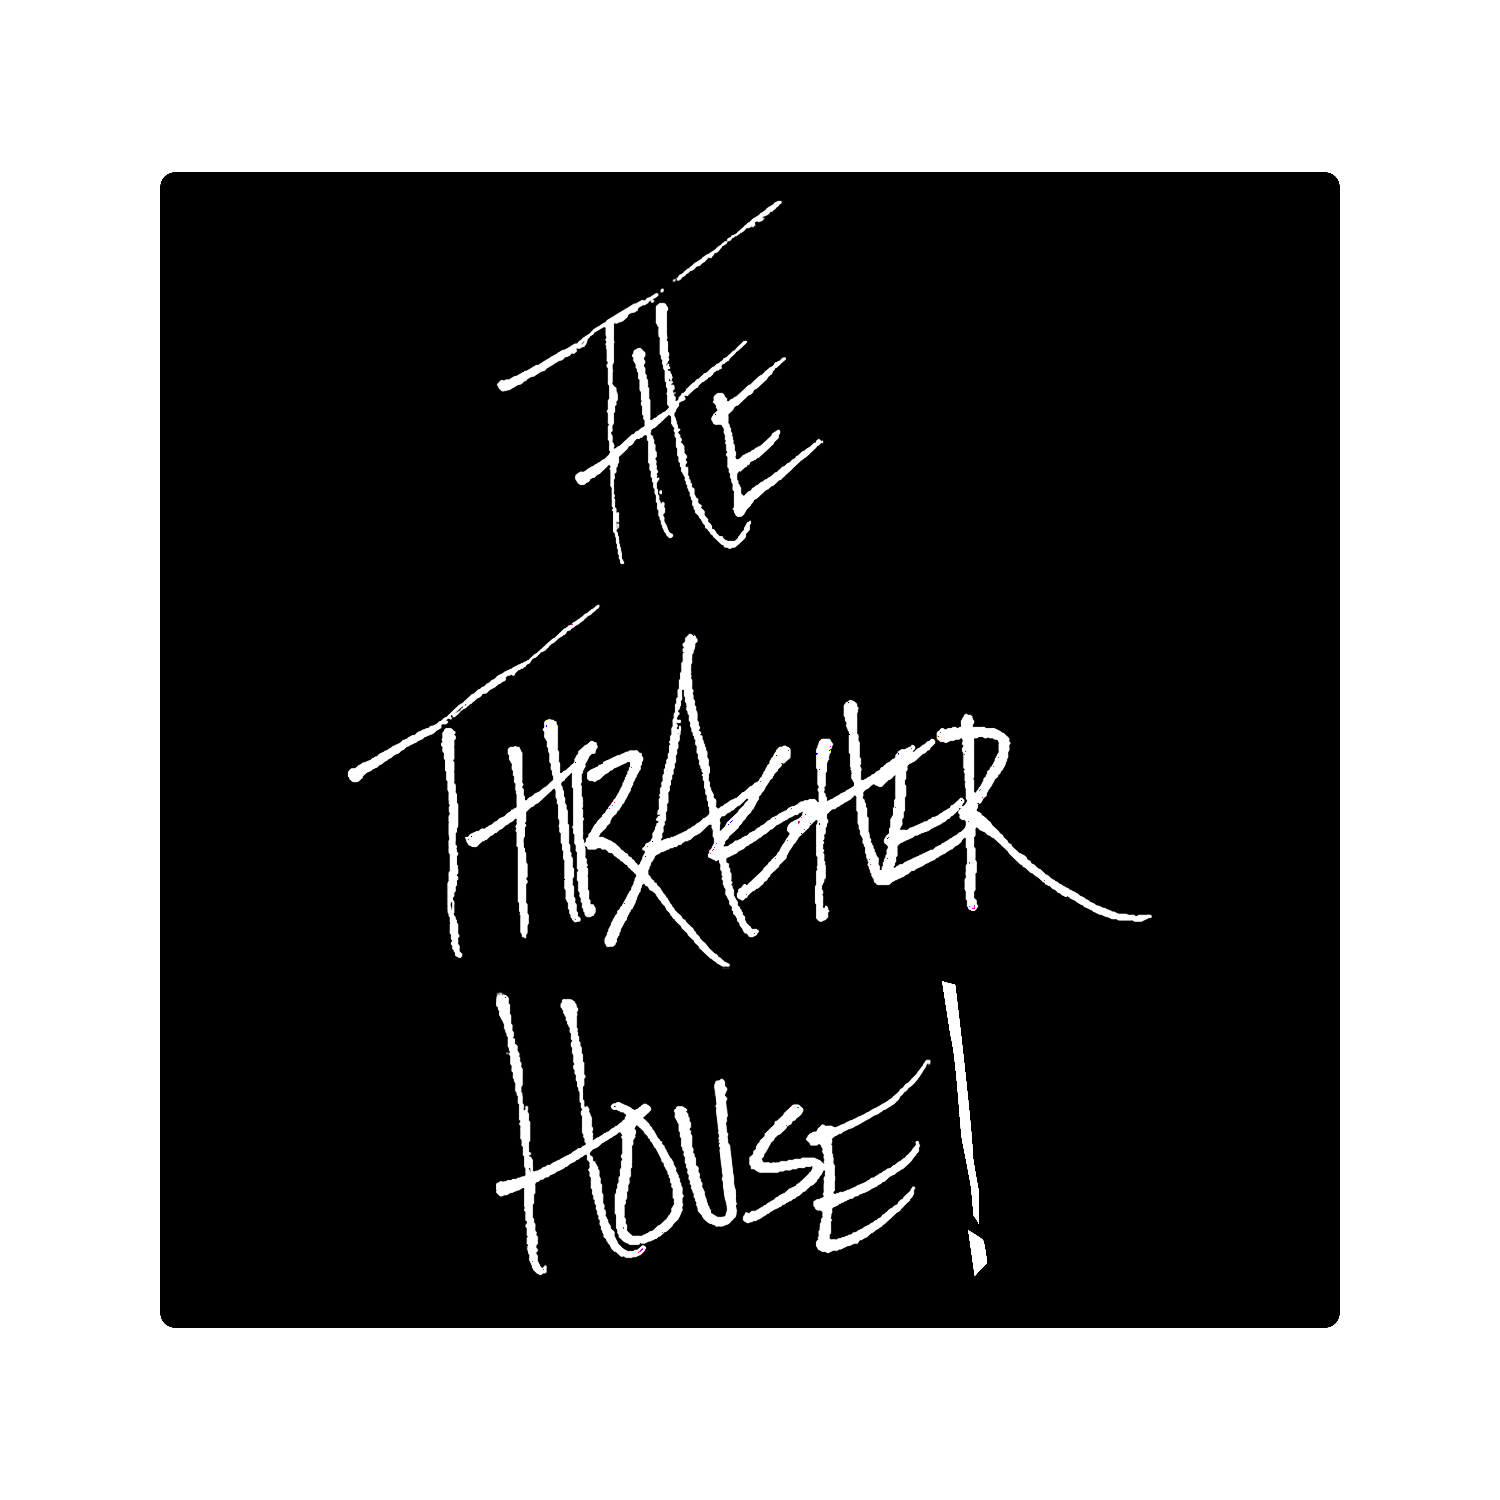 The Thrasher House, L.L.C. Logo